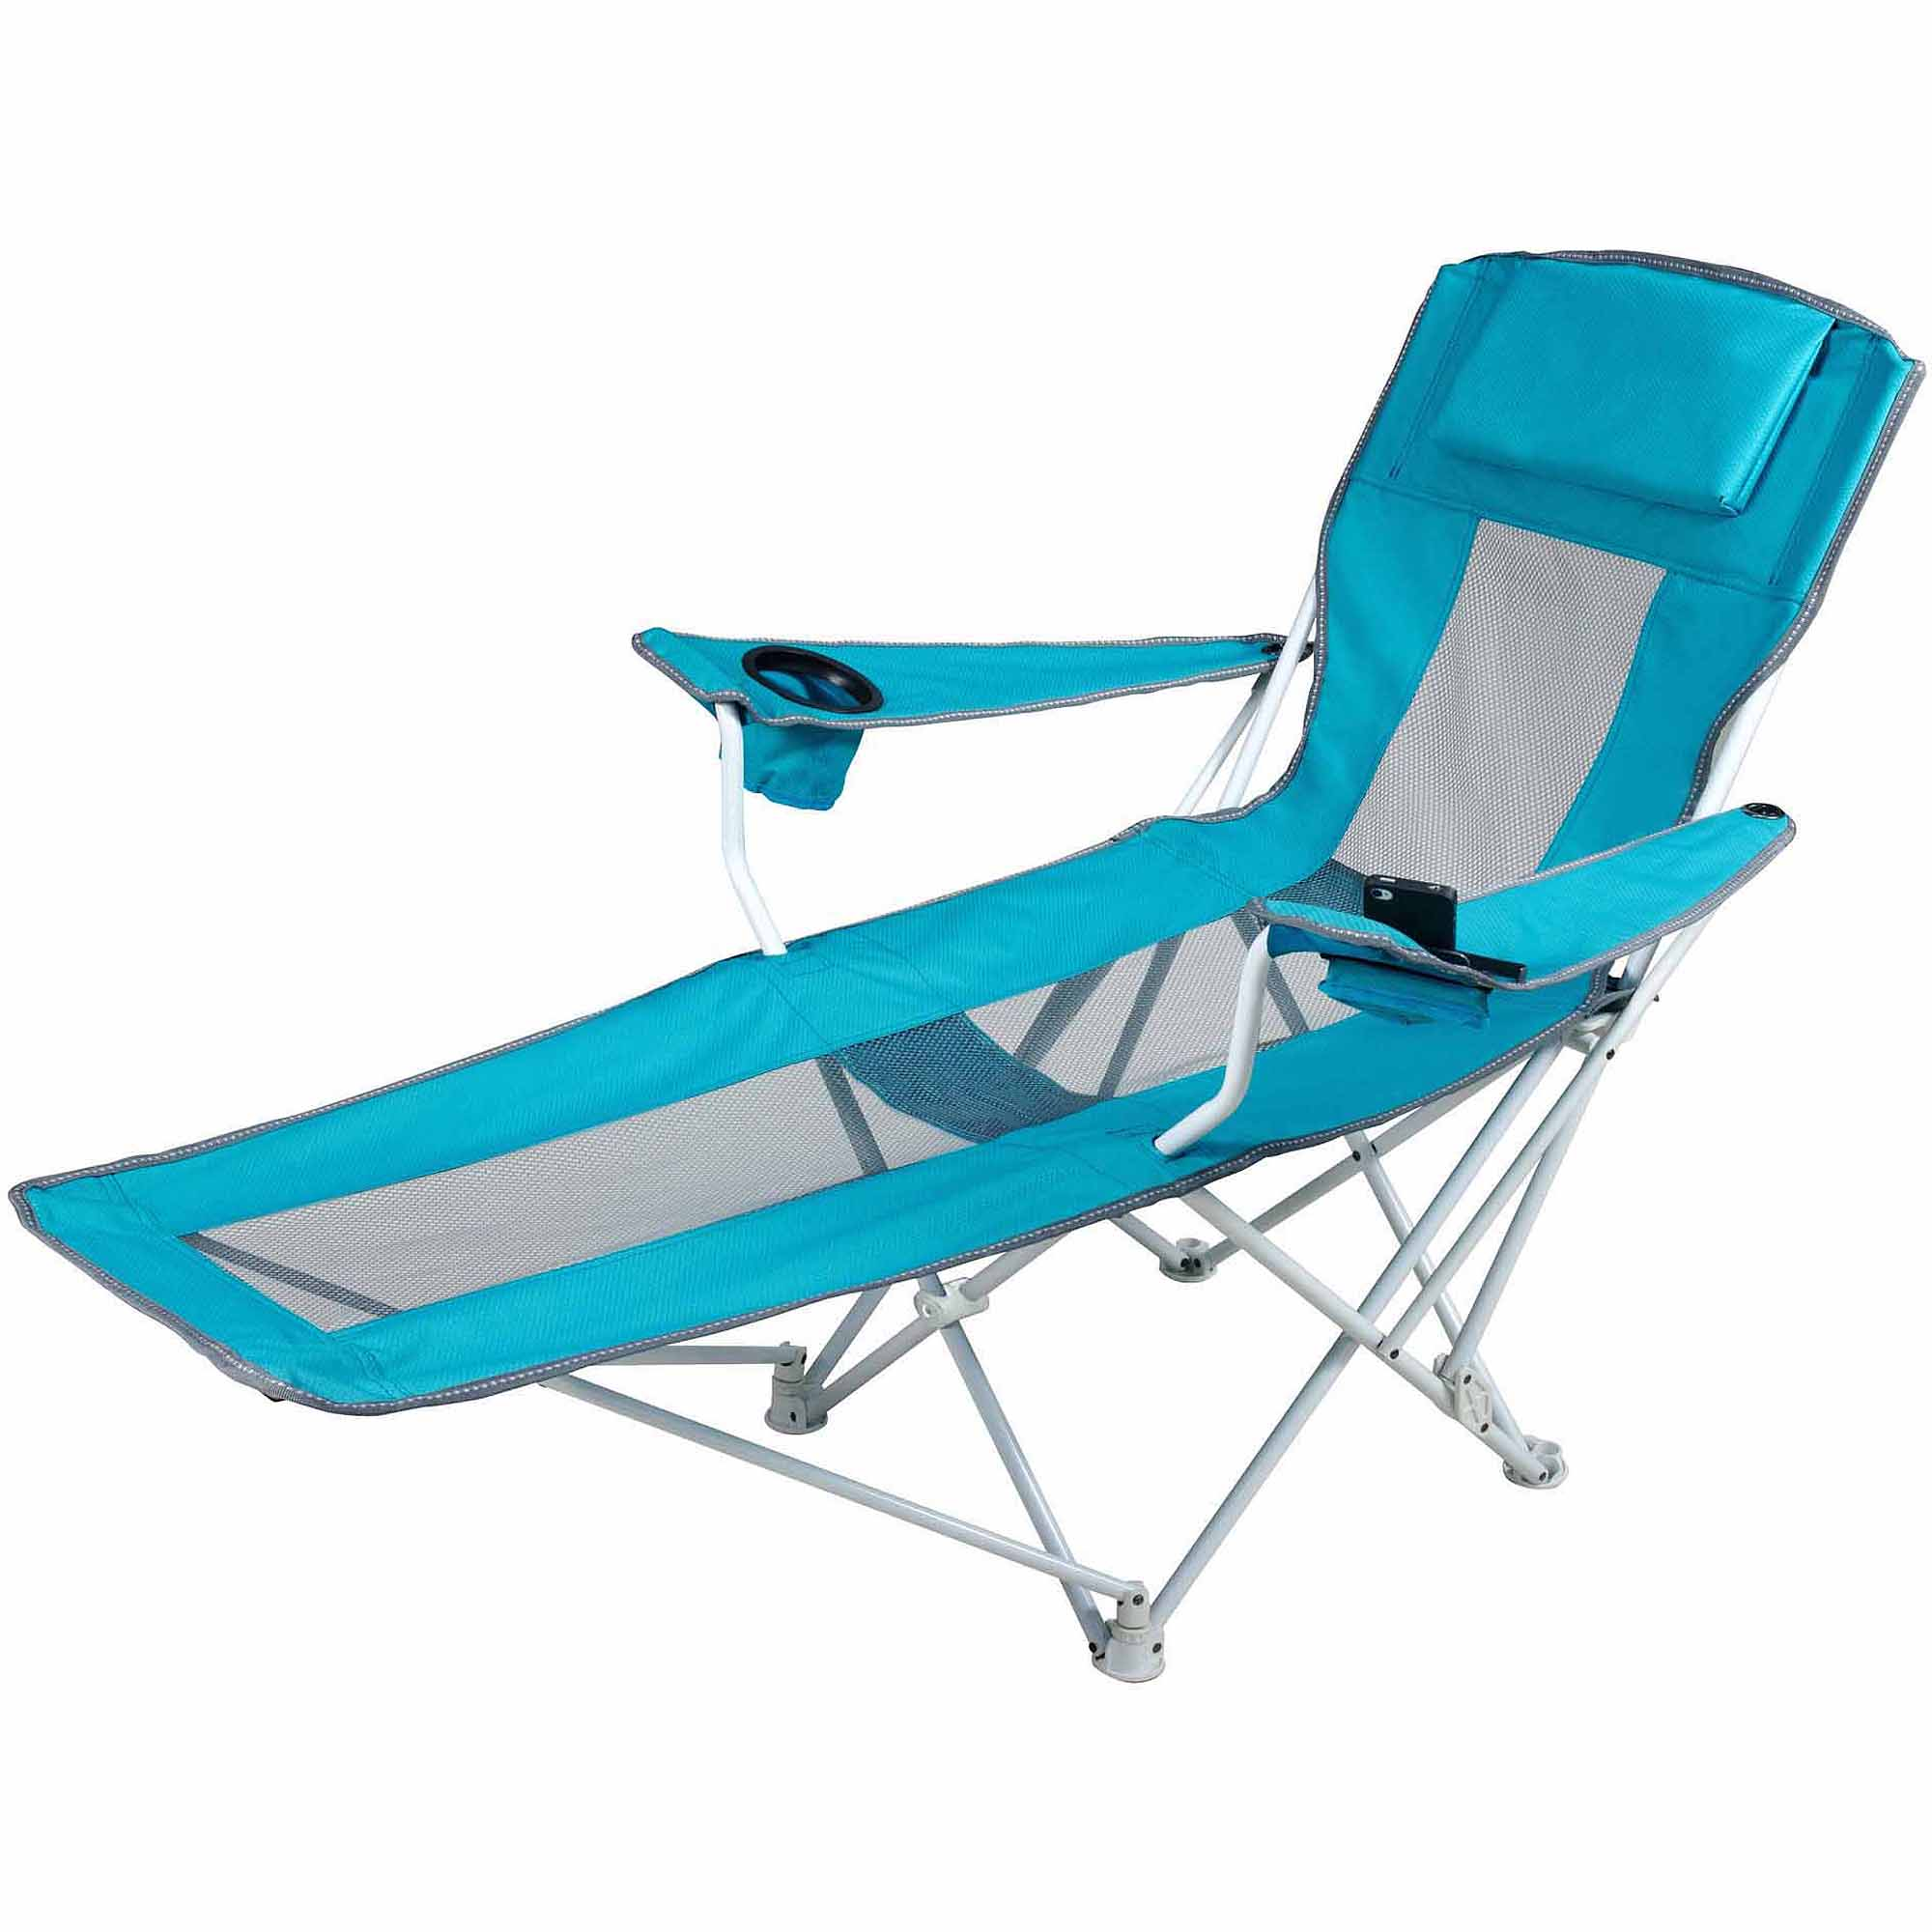 Quik Chair 1/4 Ton Heavy Duty Folding Armchair   Walmart.com